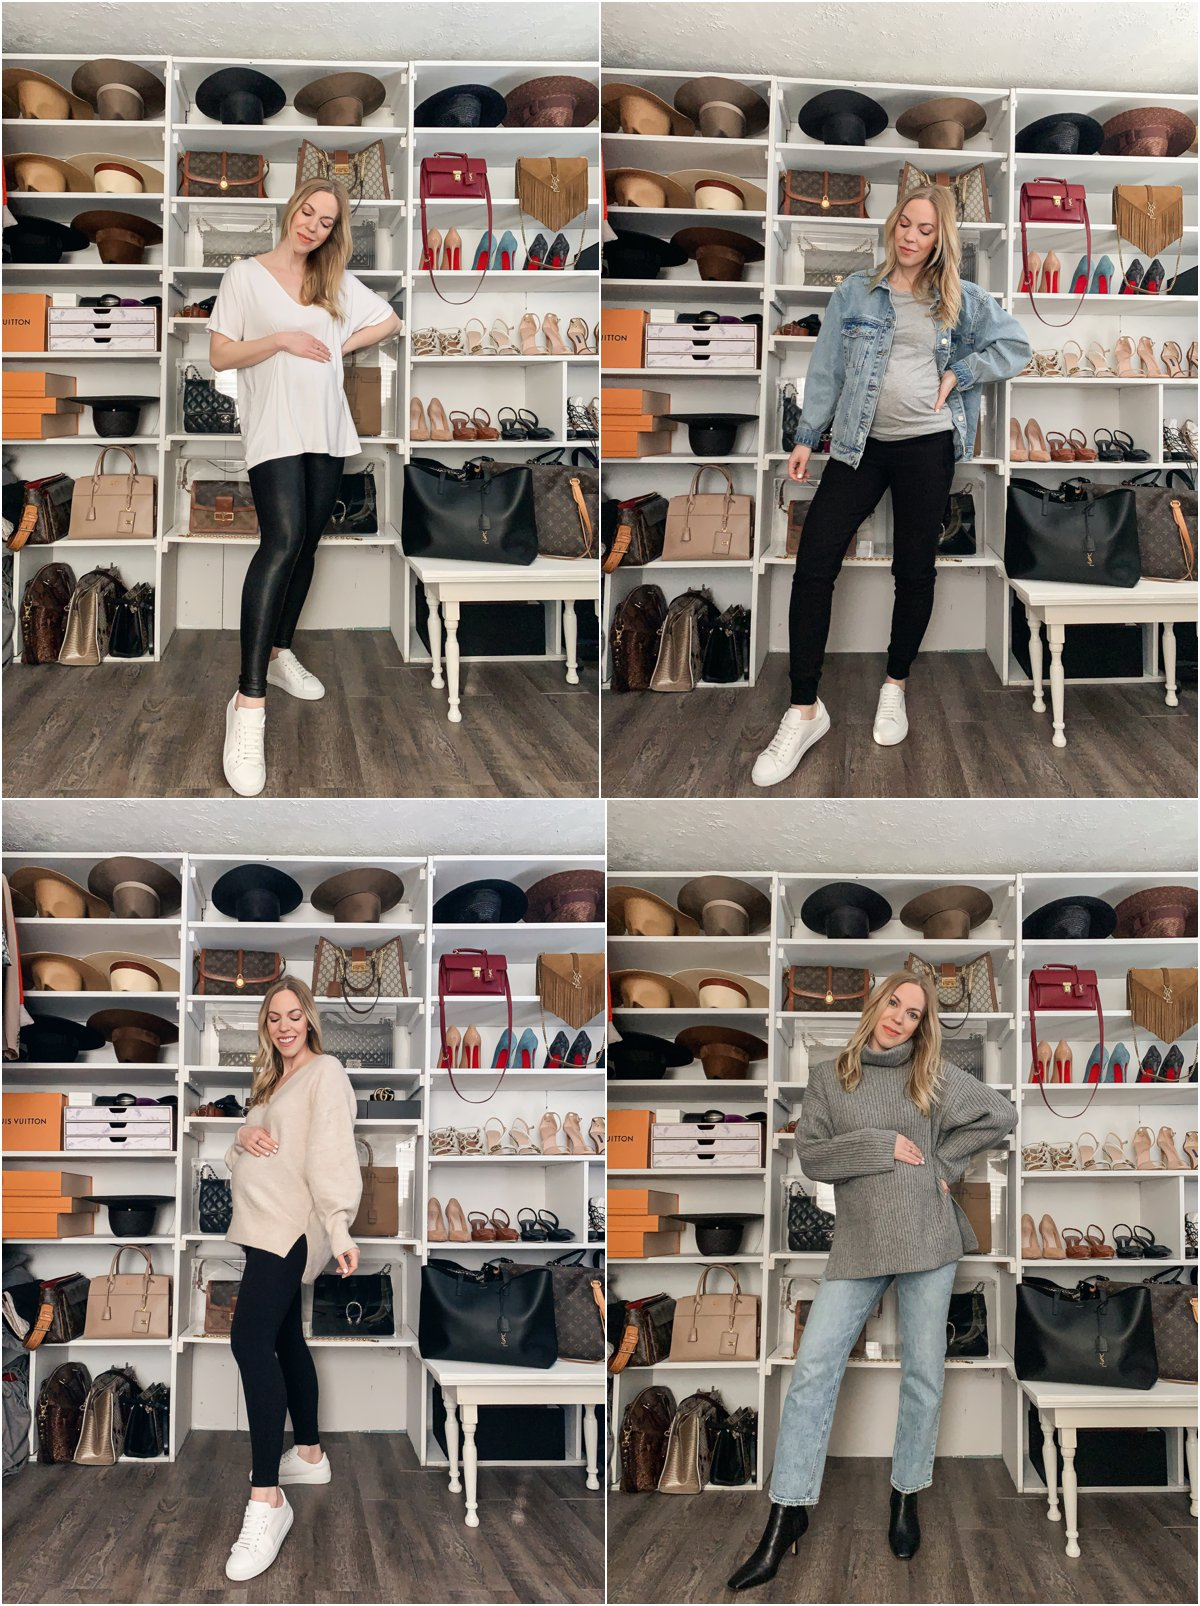 Meagan Brandon fashion blogger of Meagan's Moda shares four pairs of maternity pants worth the splurge, investment